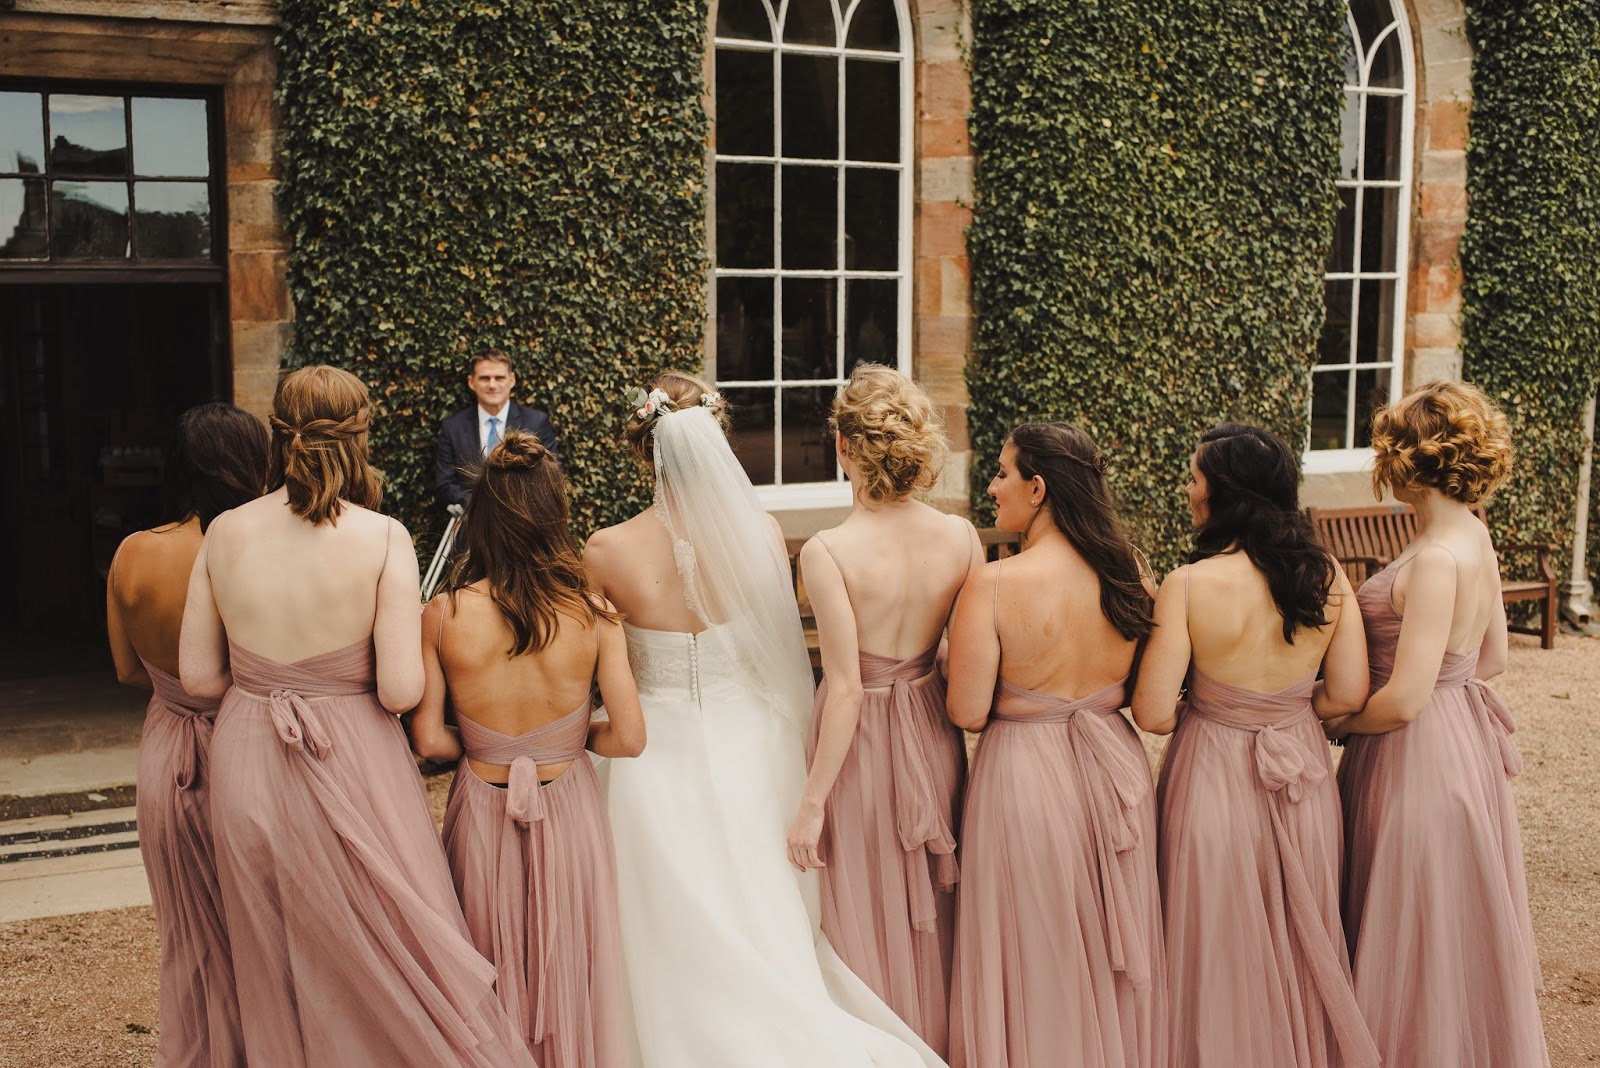 Scotland wedding inspiration bridesmaids bhldn